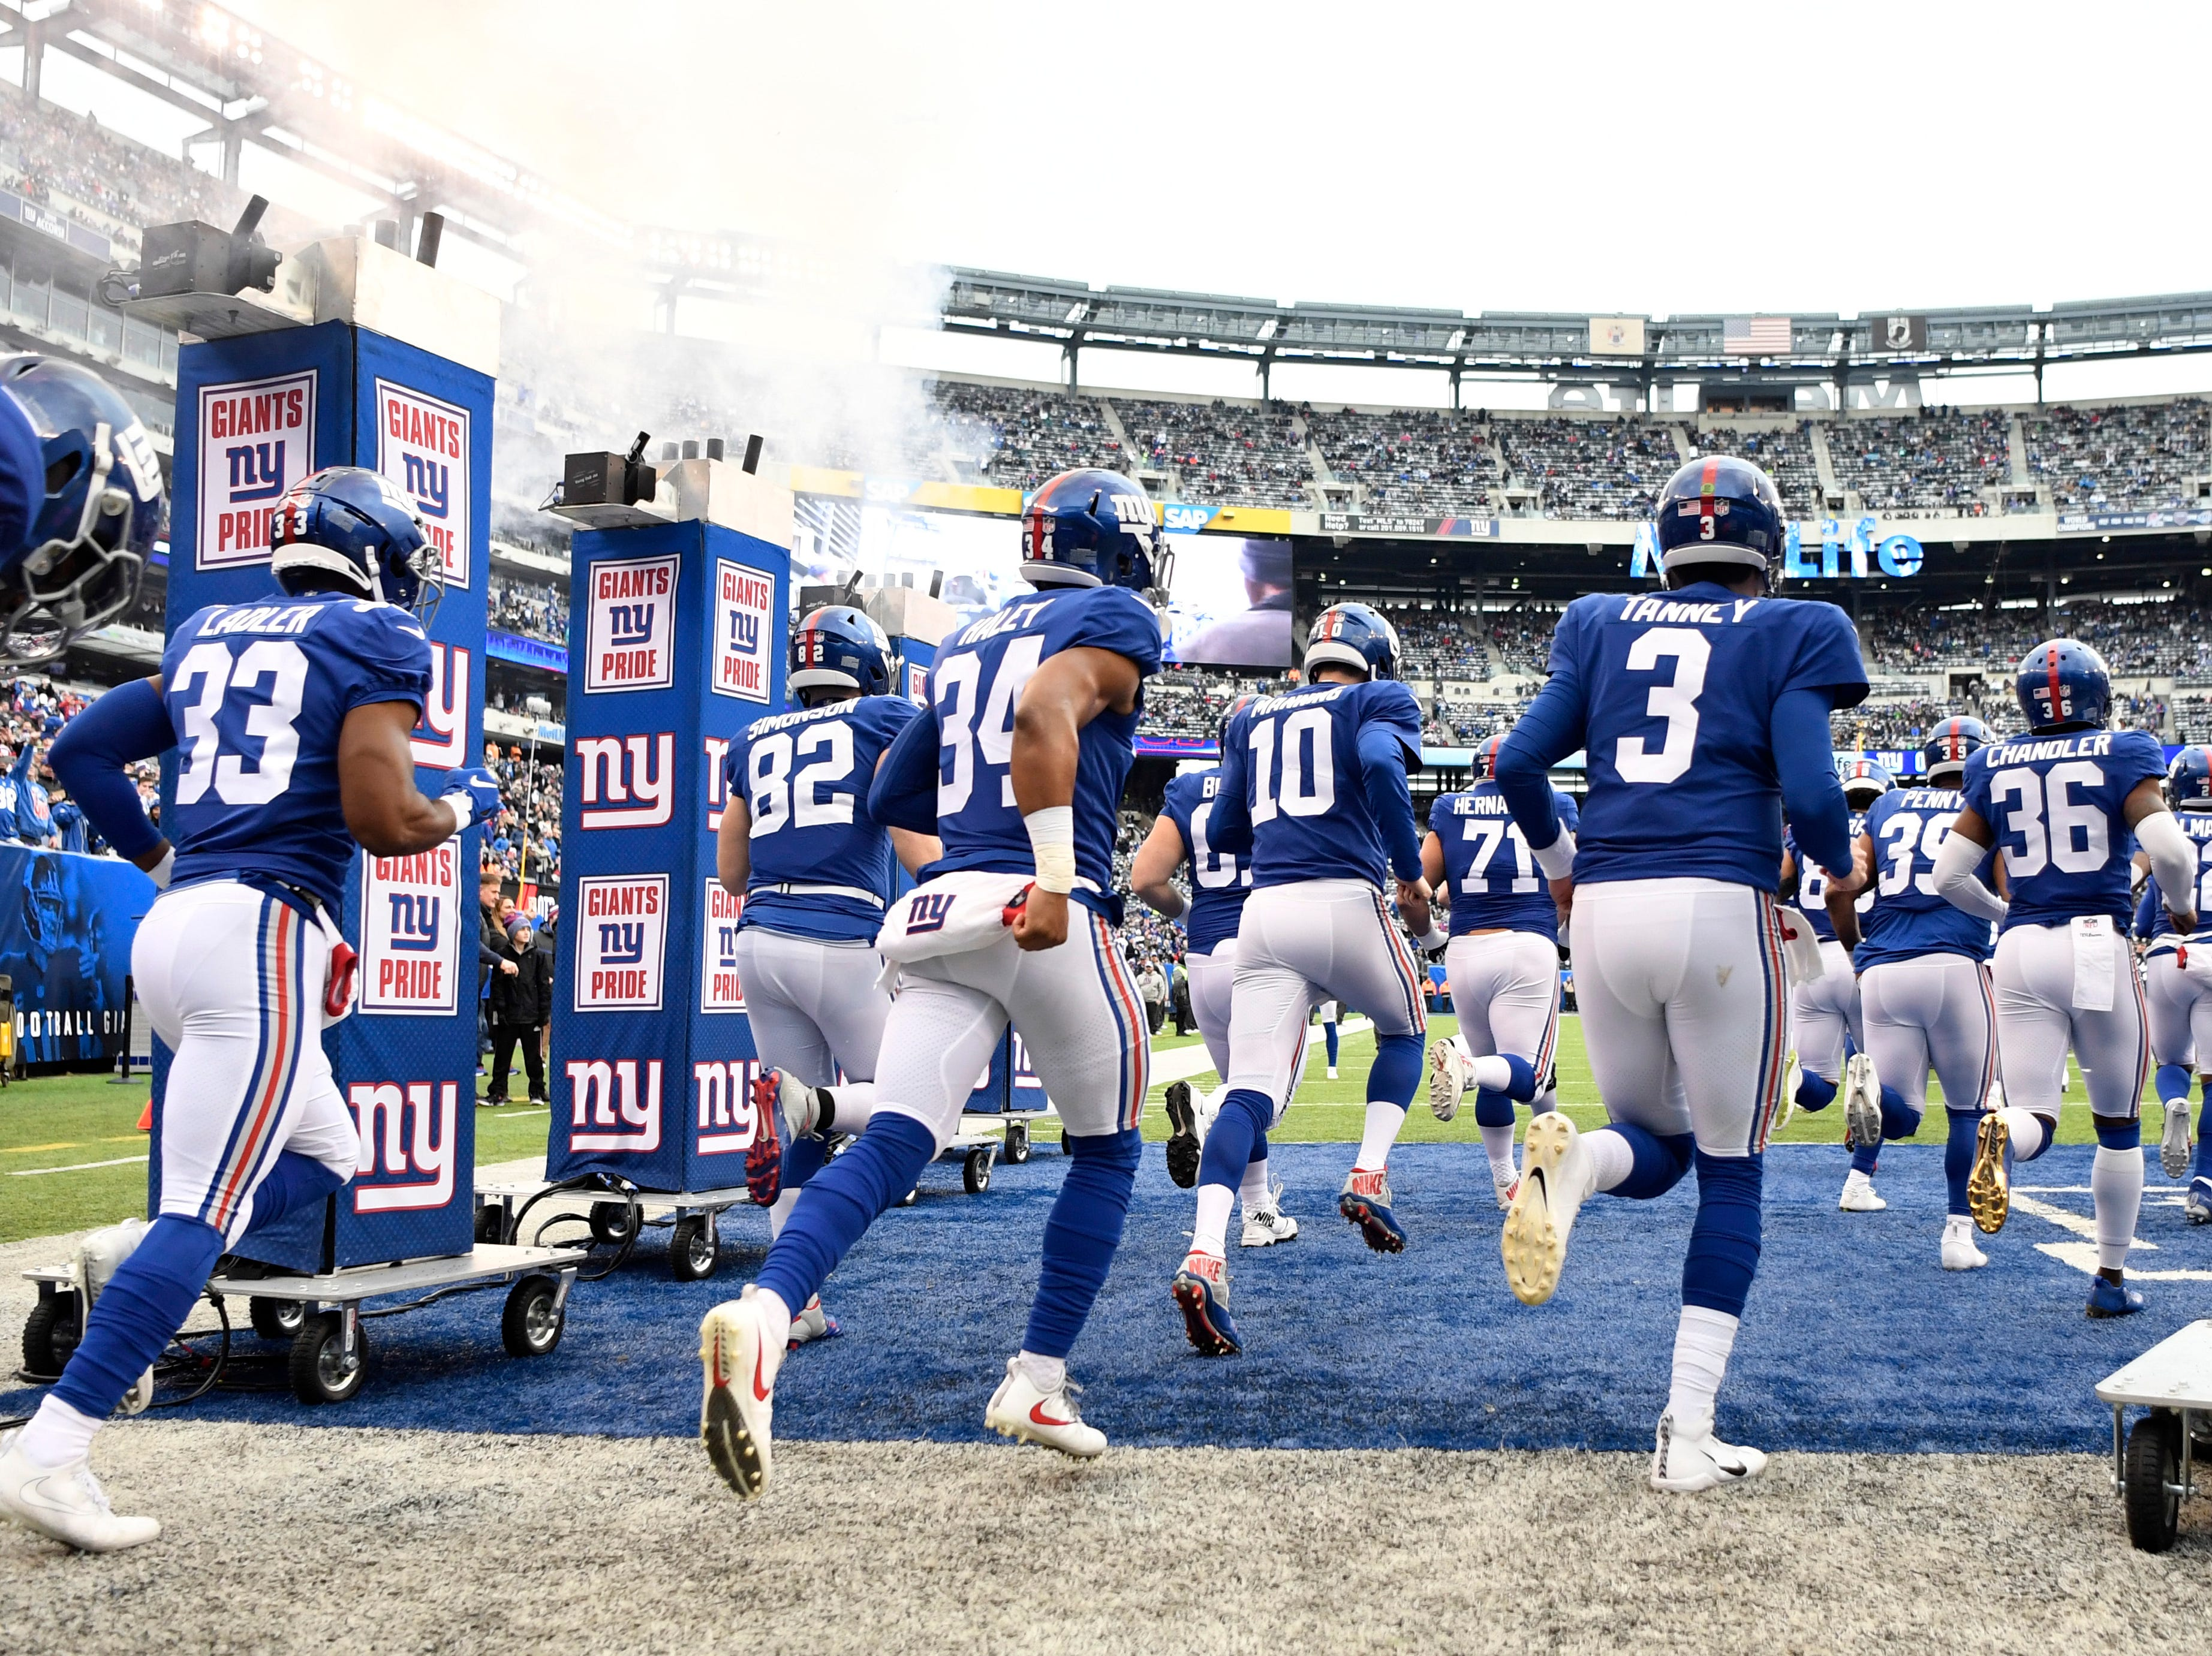 New York Giants quarterback Eli Manning (10) and the Giants take the field to face the Dallas Cowboys in the last regular season game on Sunday, Dec. 30, 2018, in East Rutherford.